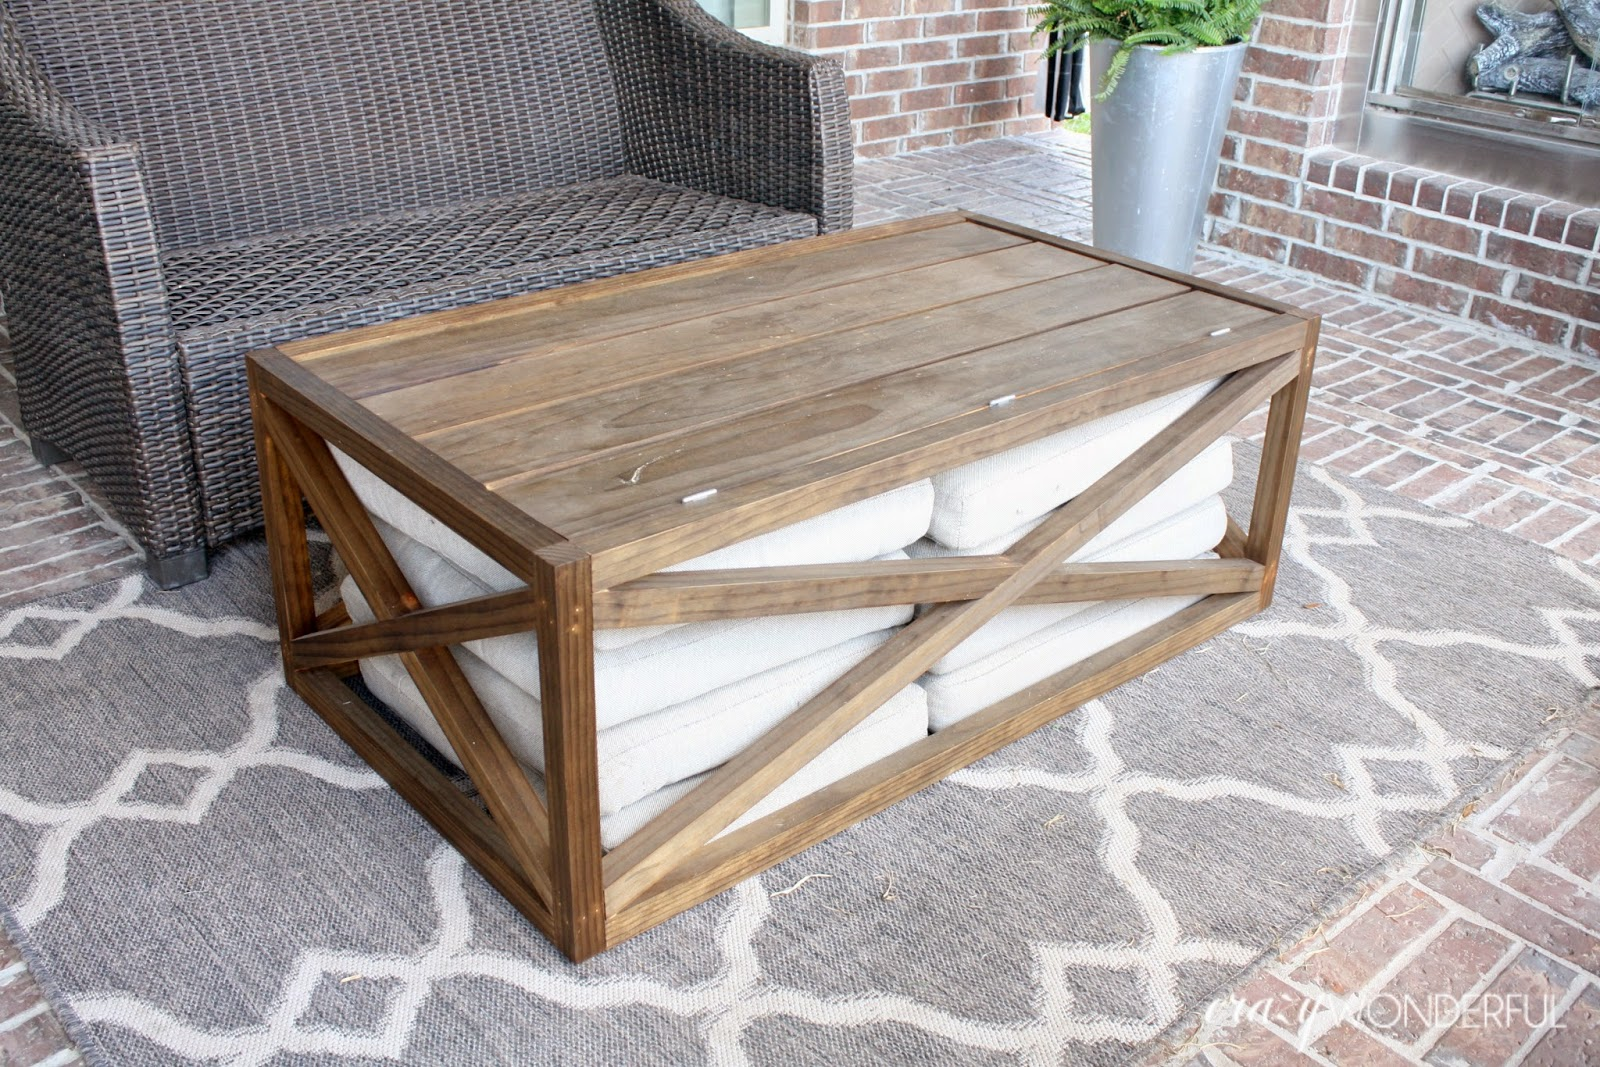 diy outdoor coffee table with storage crazy wonderful side accent ideas target waldo small white wicker bedside west elm mid century lamp dining and bench set waterproof garden